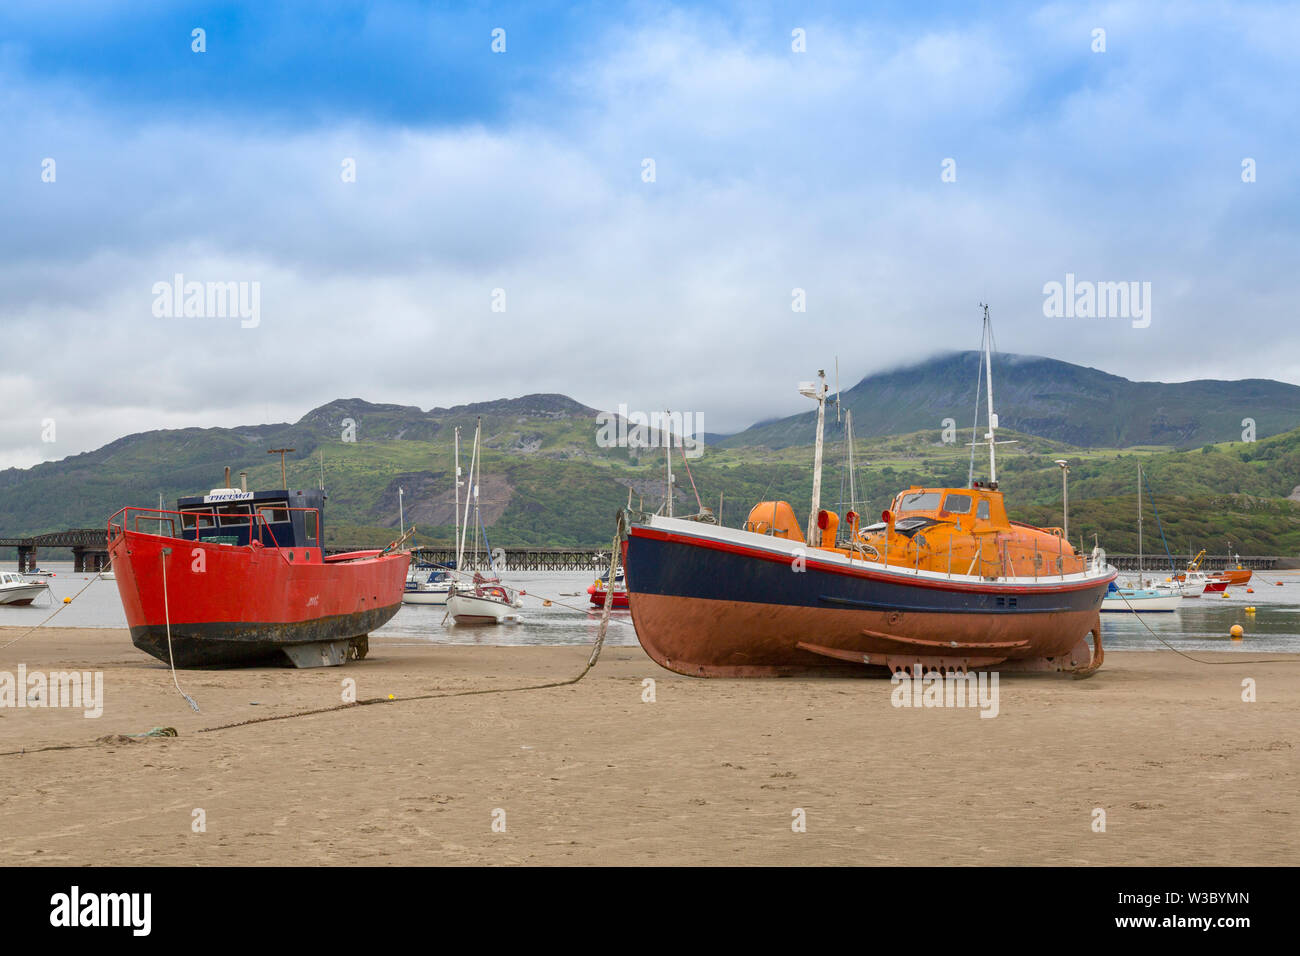 A former RNLI Watson class lifeboat sits on the sand at low water in the Mawddach estuary at Barmouth, Gwynedd, Wales, UK - Stock Image